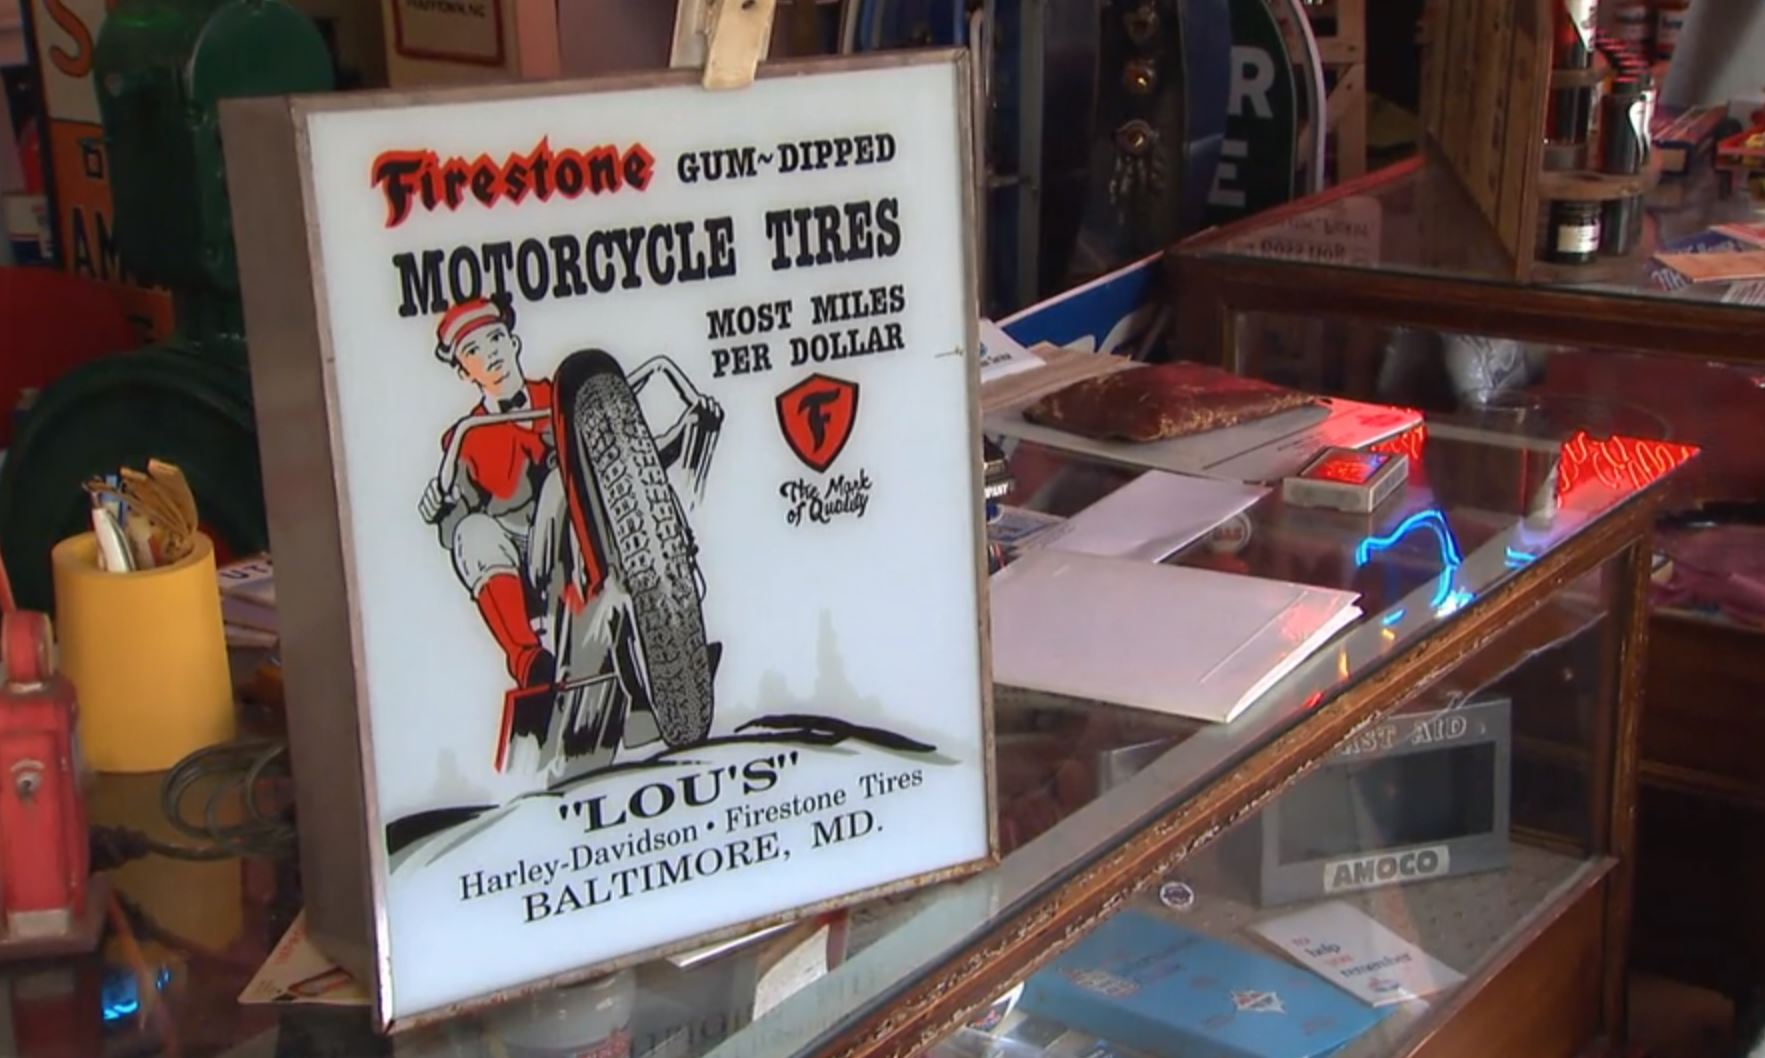 Lou's Harley-Davidson dealership sign American Pickers